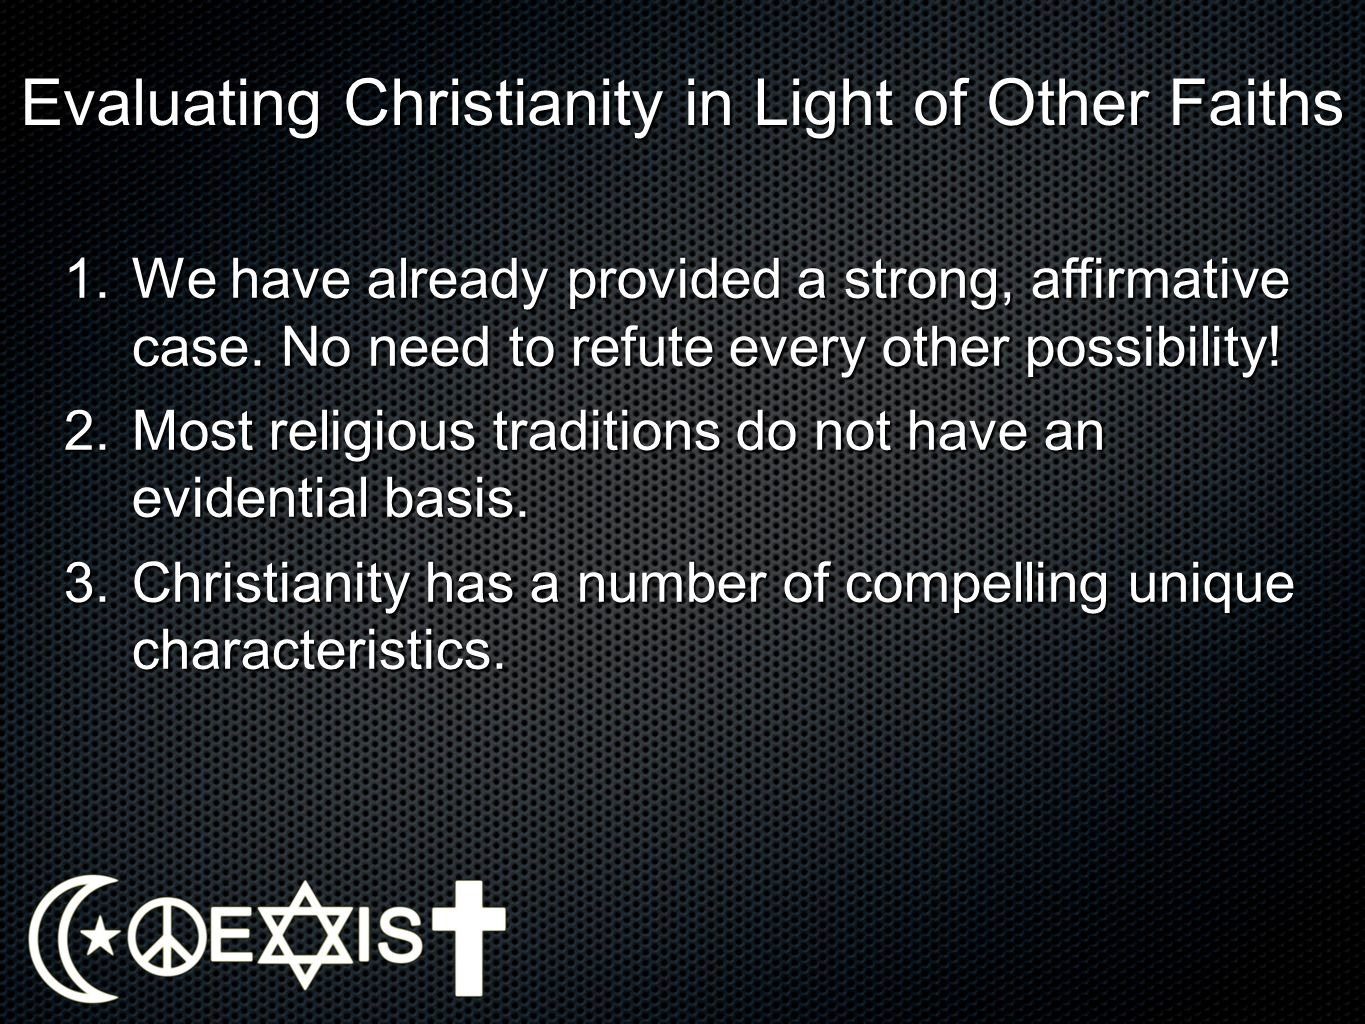 Evaluating Christianity in Light of Other Faiths